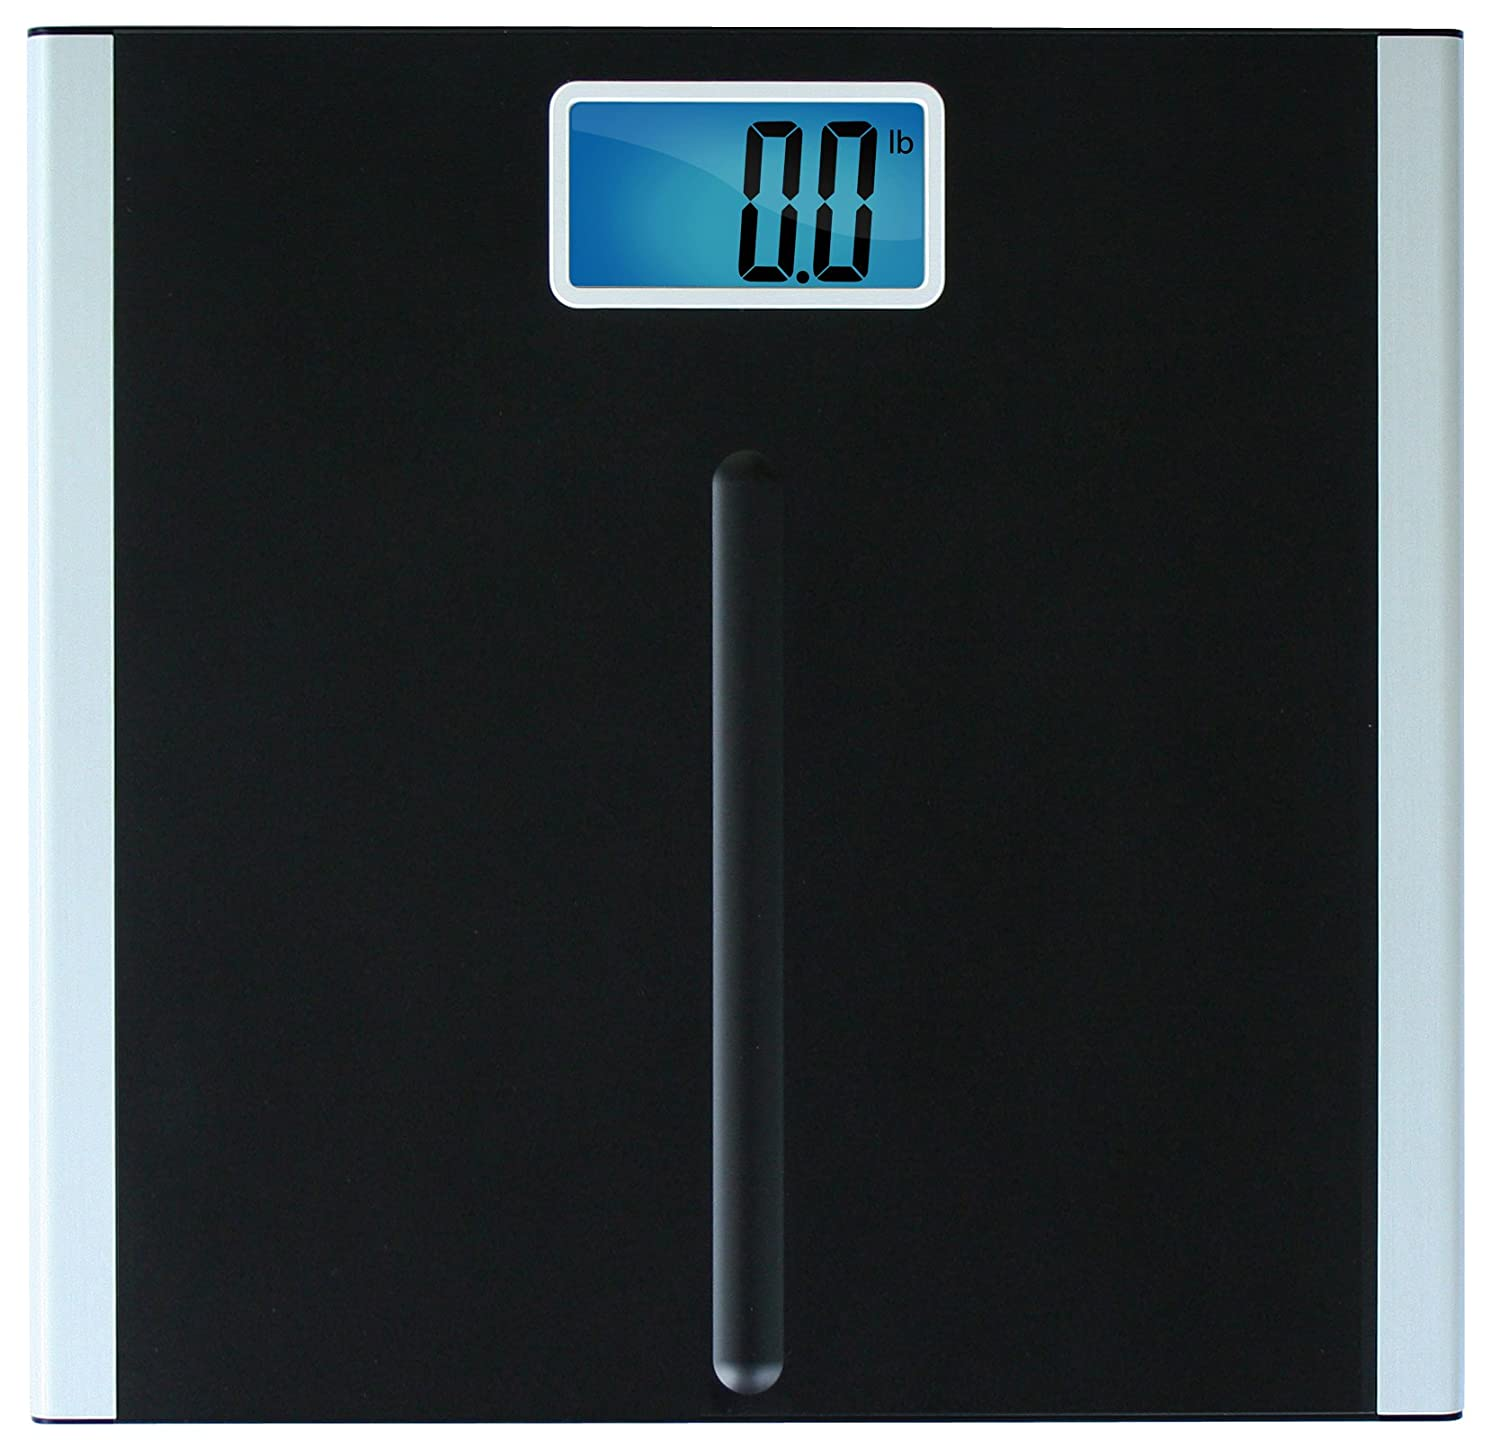 Most accurate bathroom scale 2014 - Amazon Com Eatsmart Precision Premium Digital Bathroom Scale With 3 5 Lcd And Step On Technology Health Personal Care